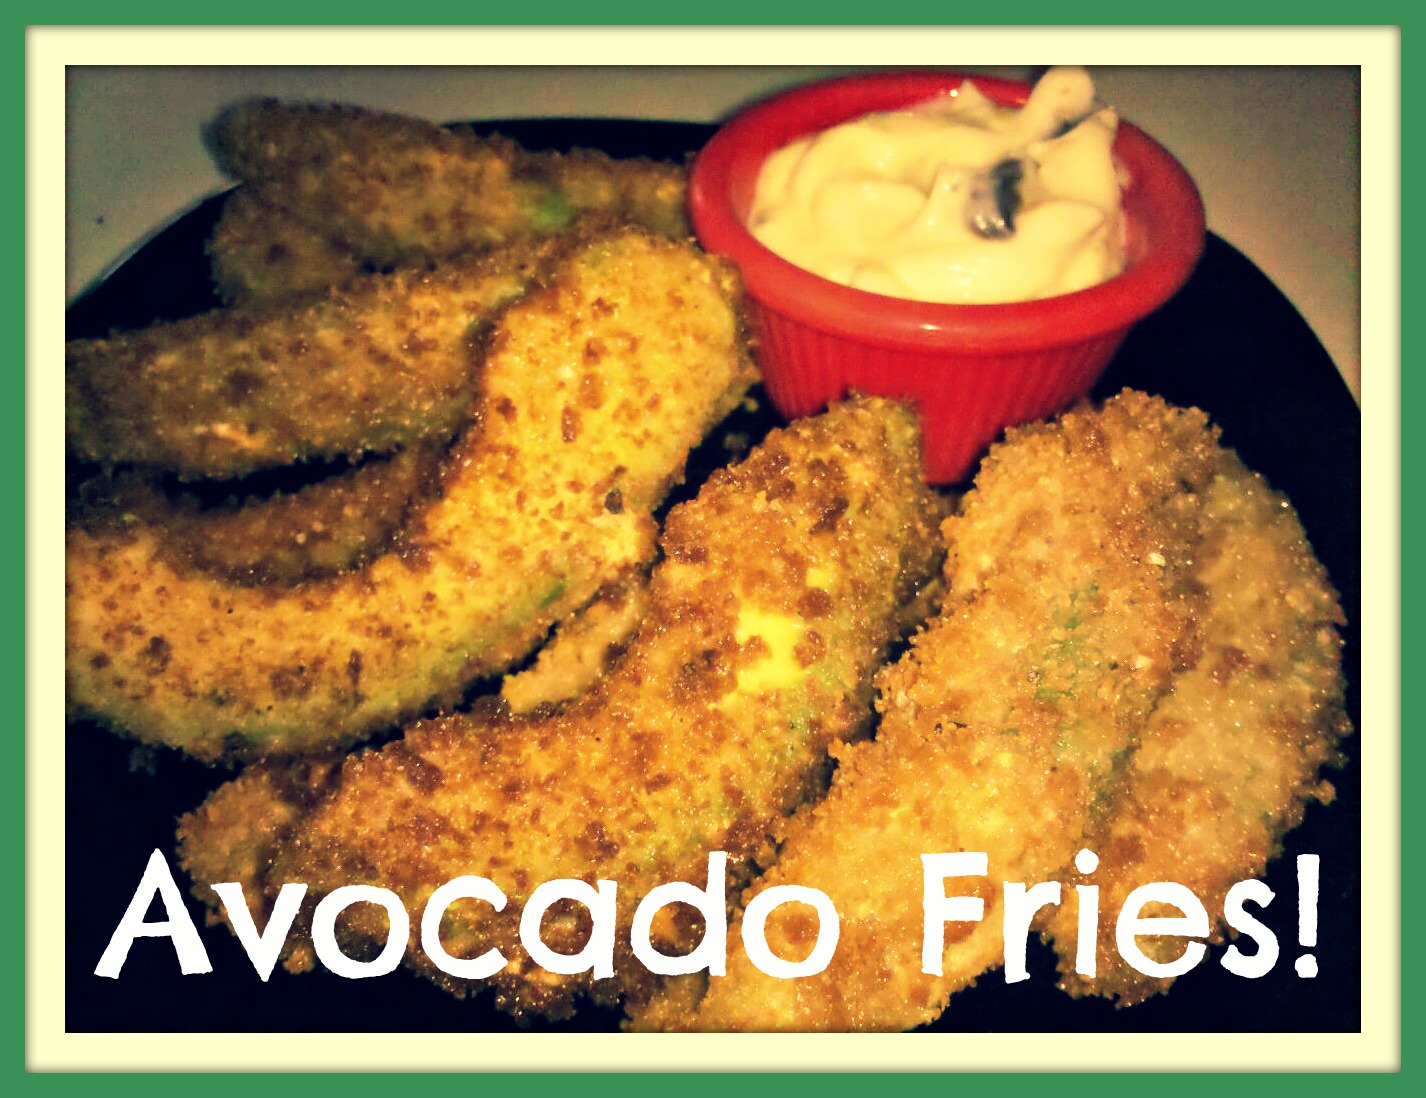 ... Foodie: Starters | Avocado Fries with Roasted Garlic Jalapeno Aioli